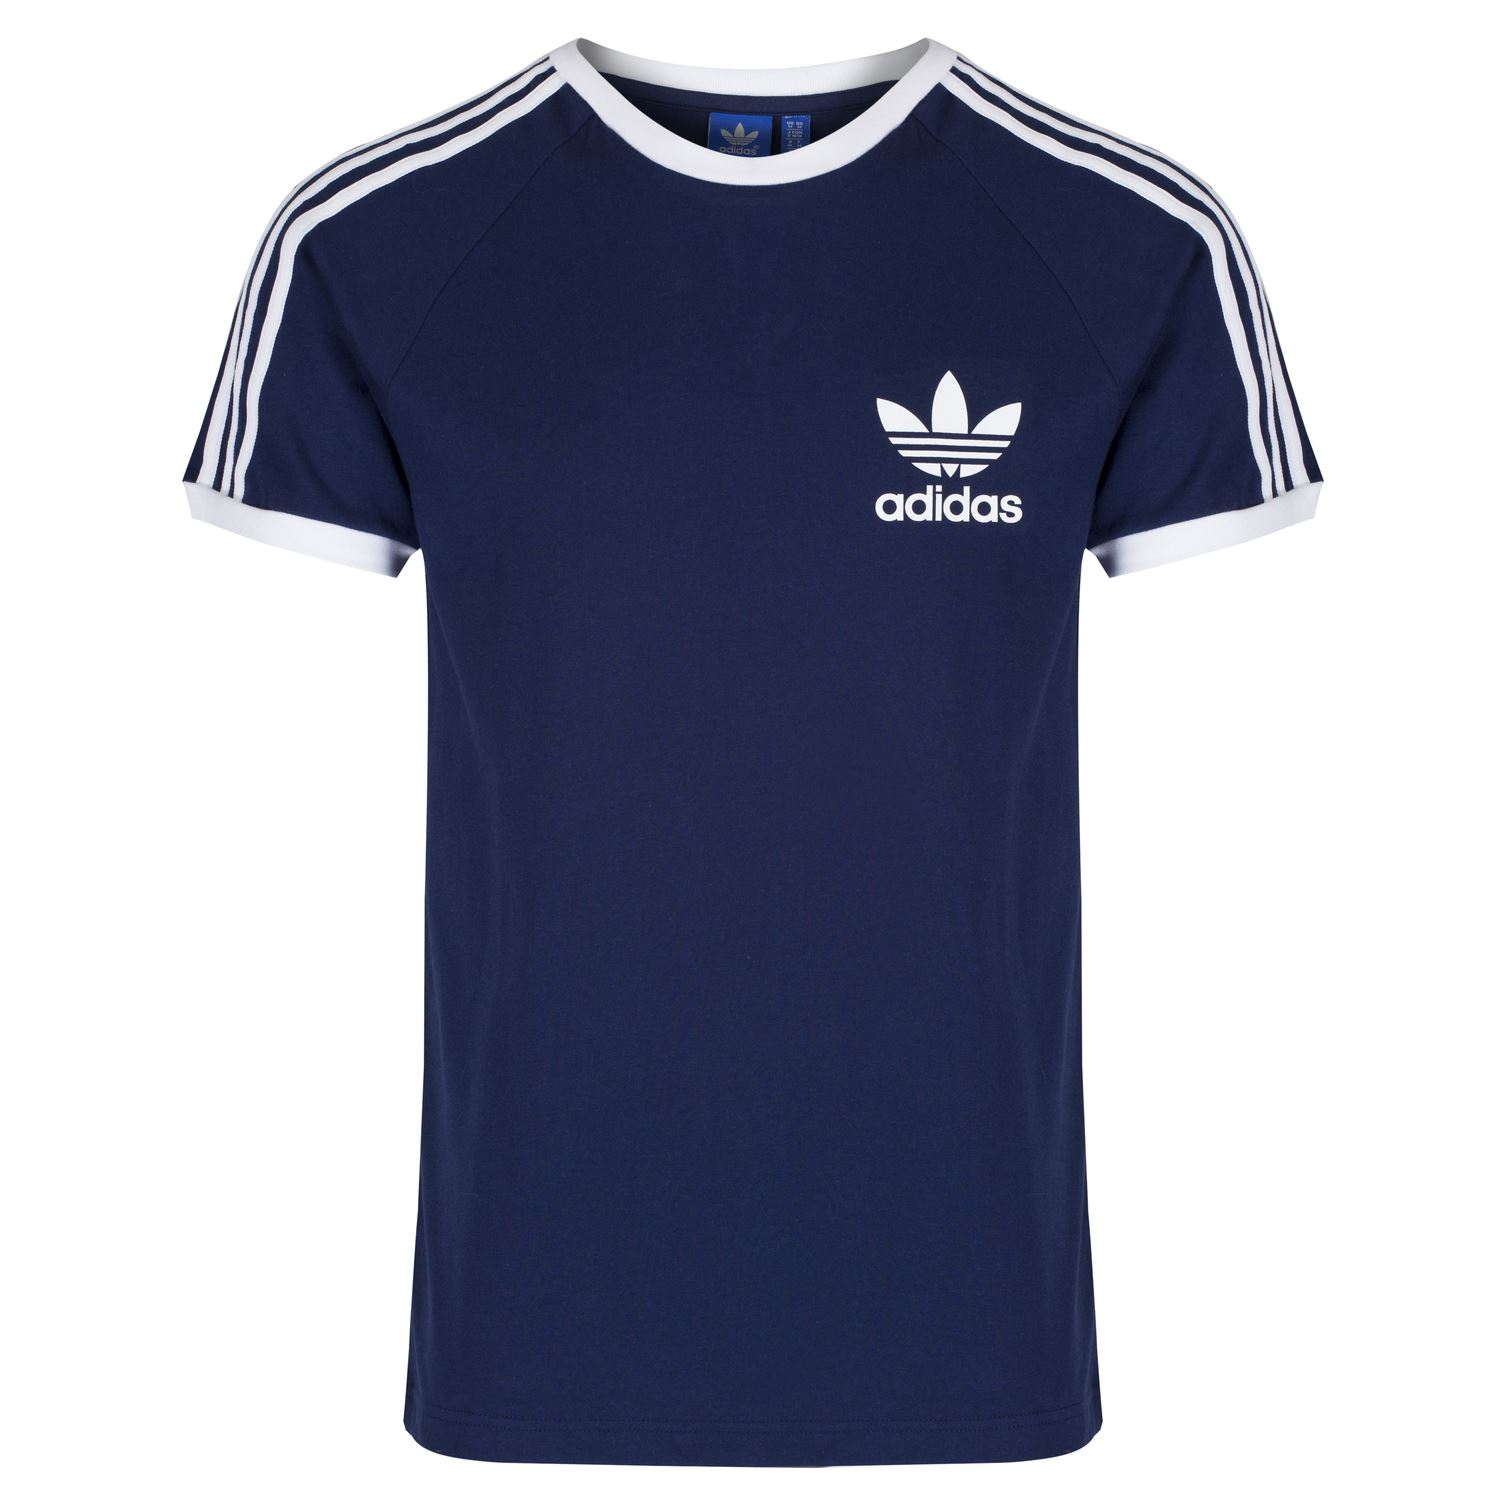 blue and white adidas shirt